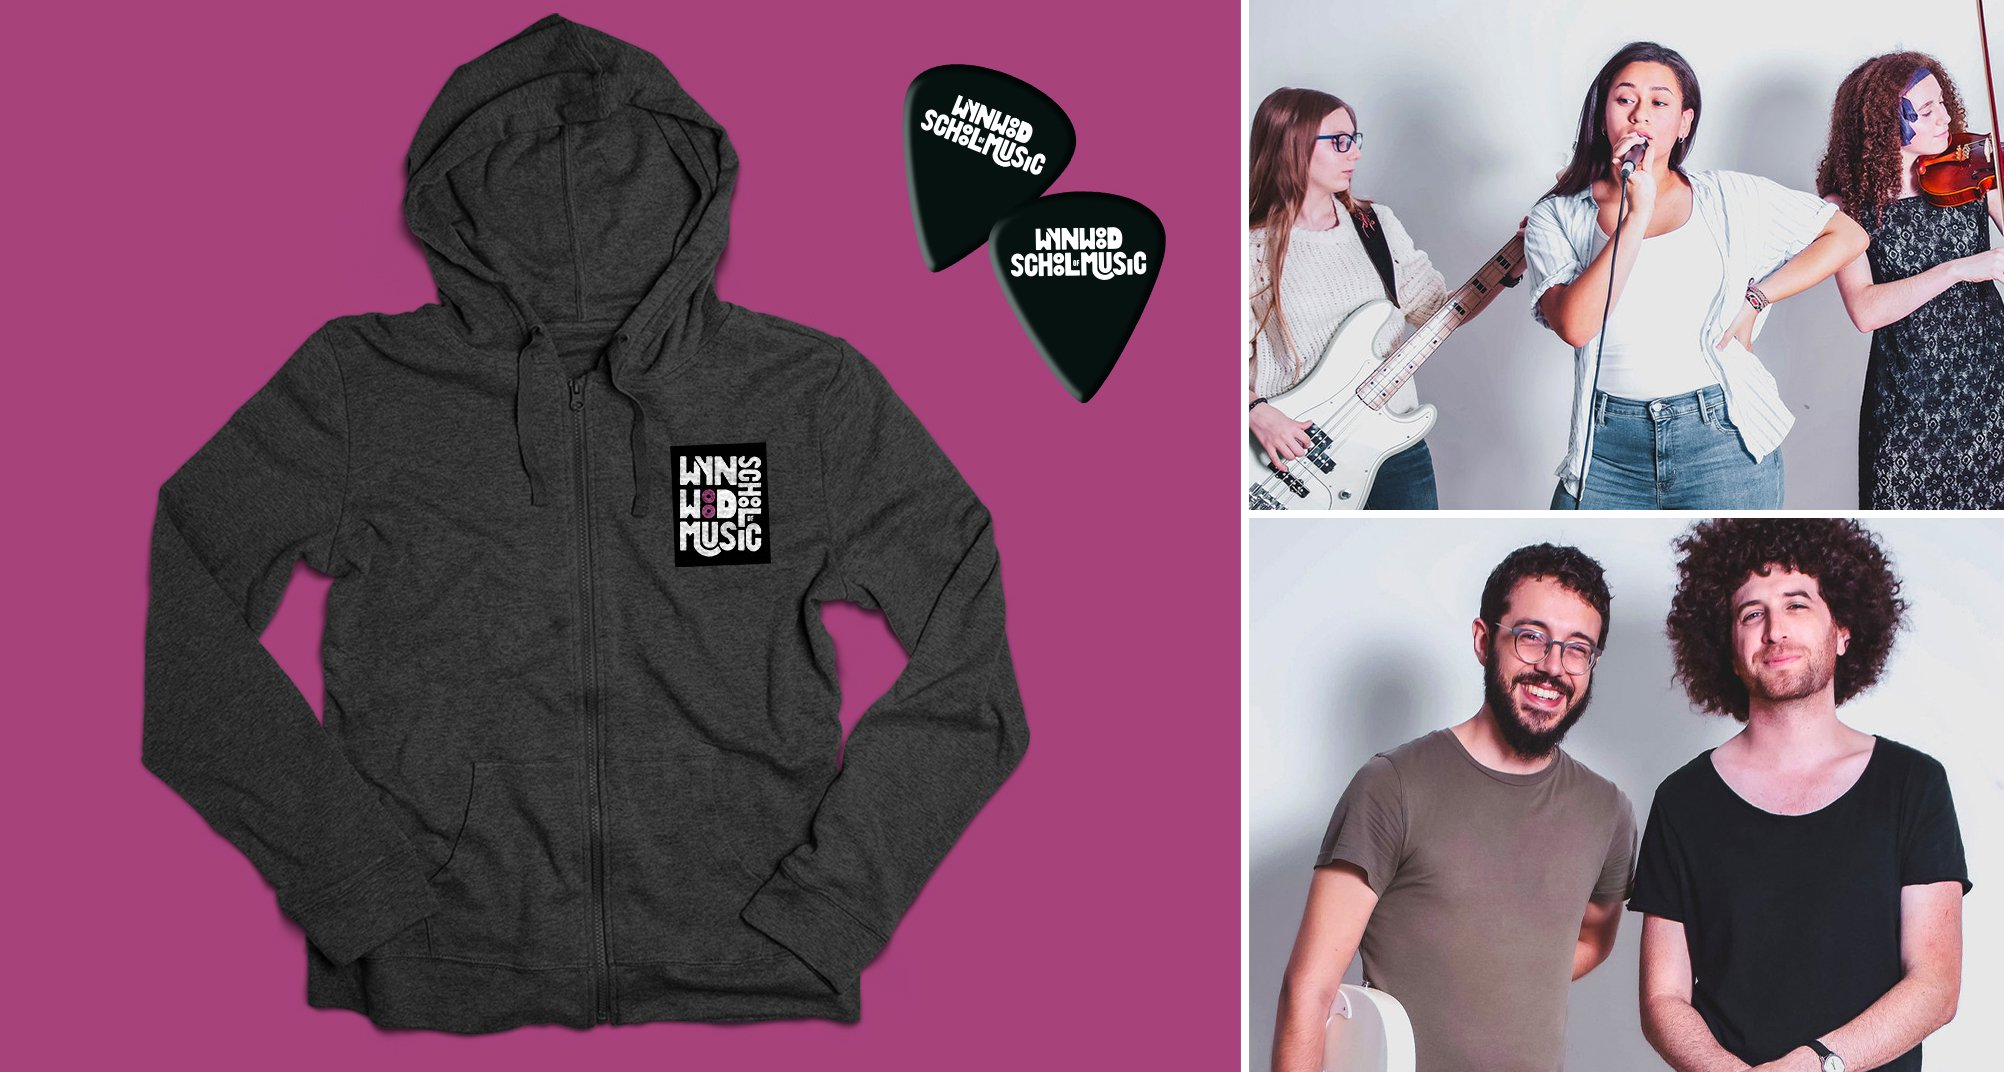 wynwood school of music apparel hoodie and guitar picks with photo grid of students and teachers